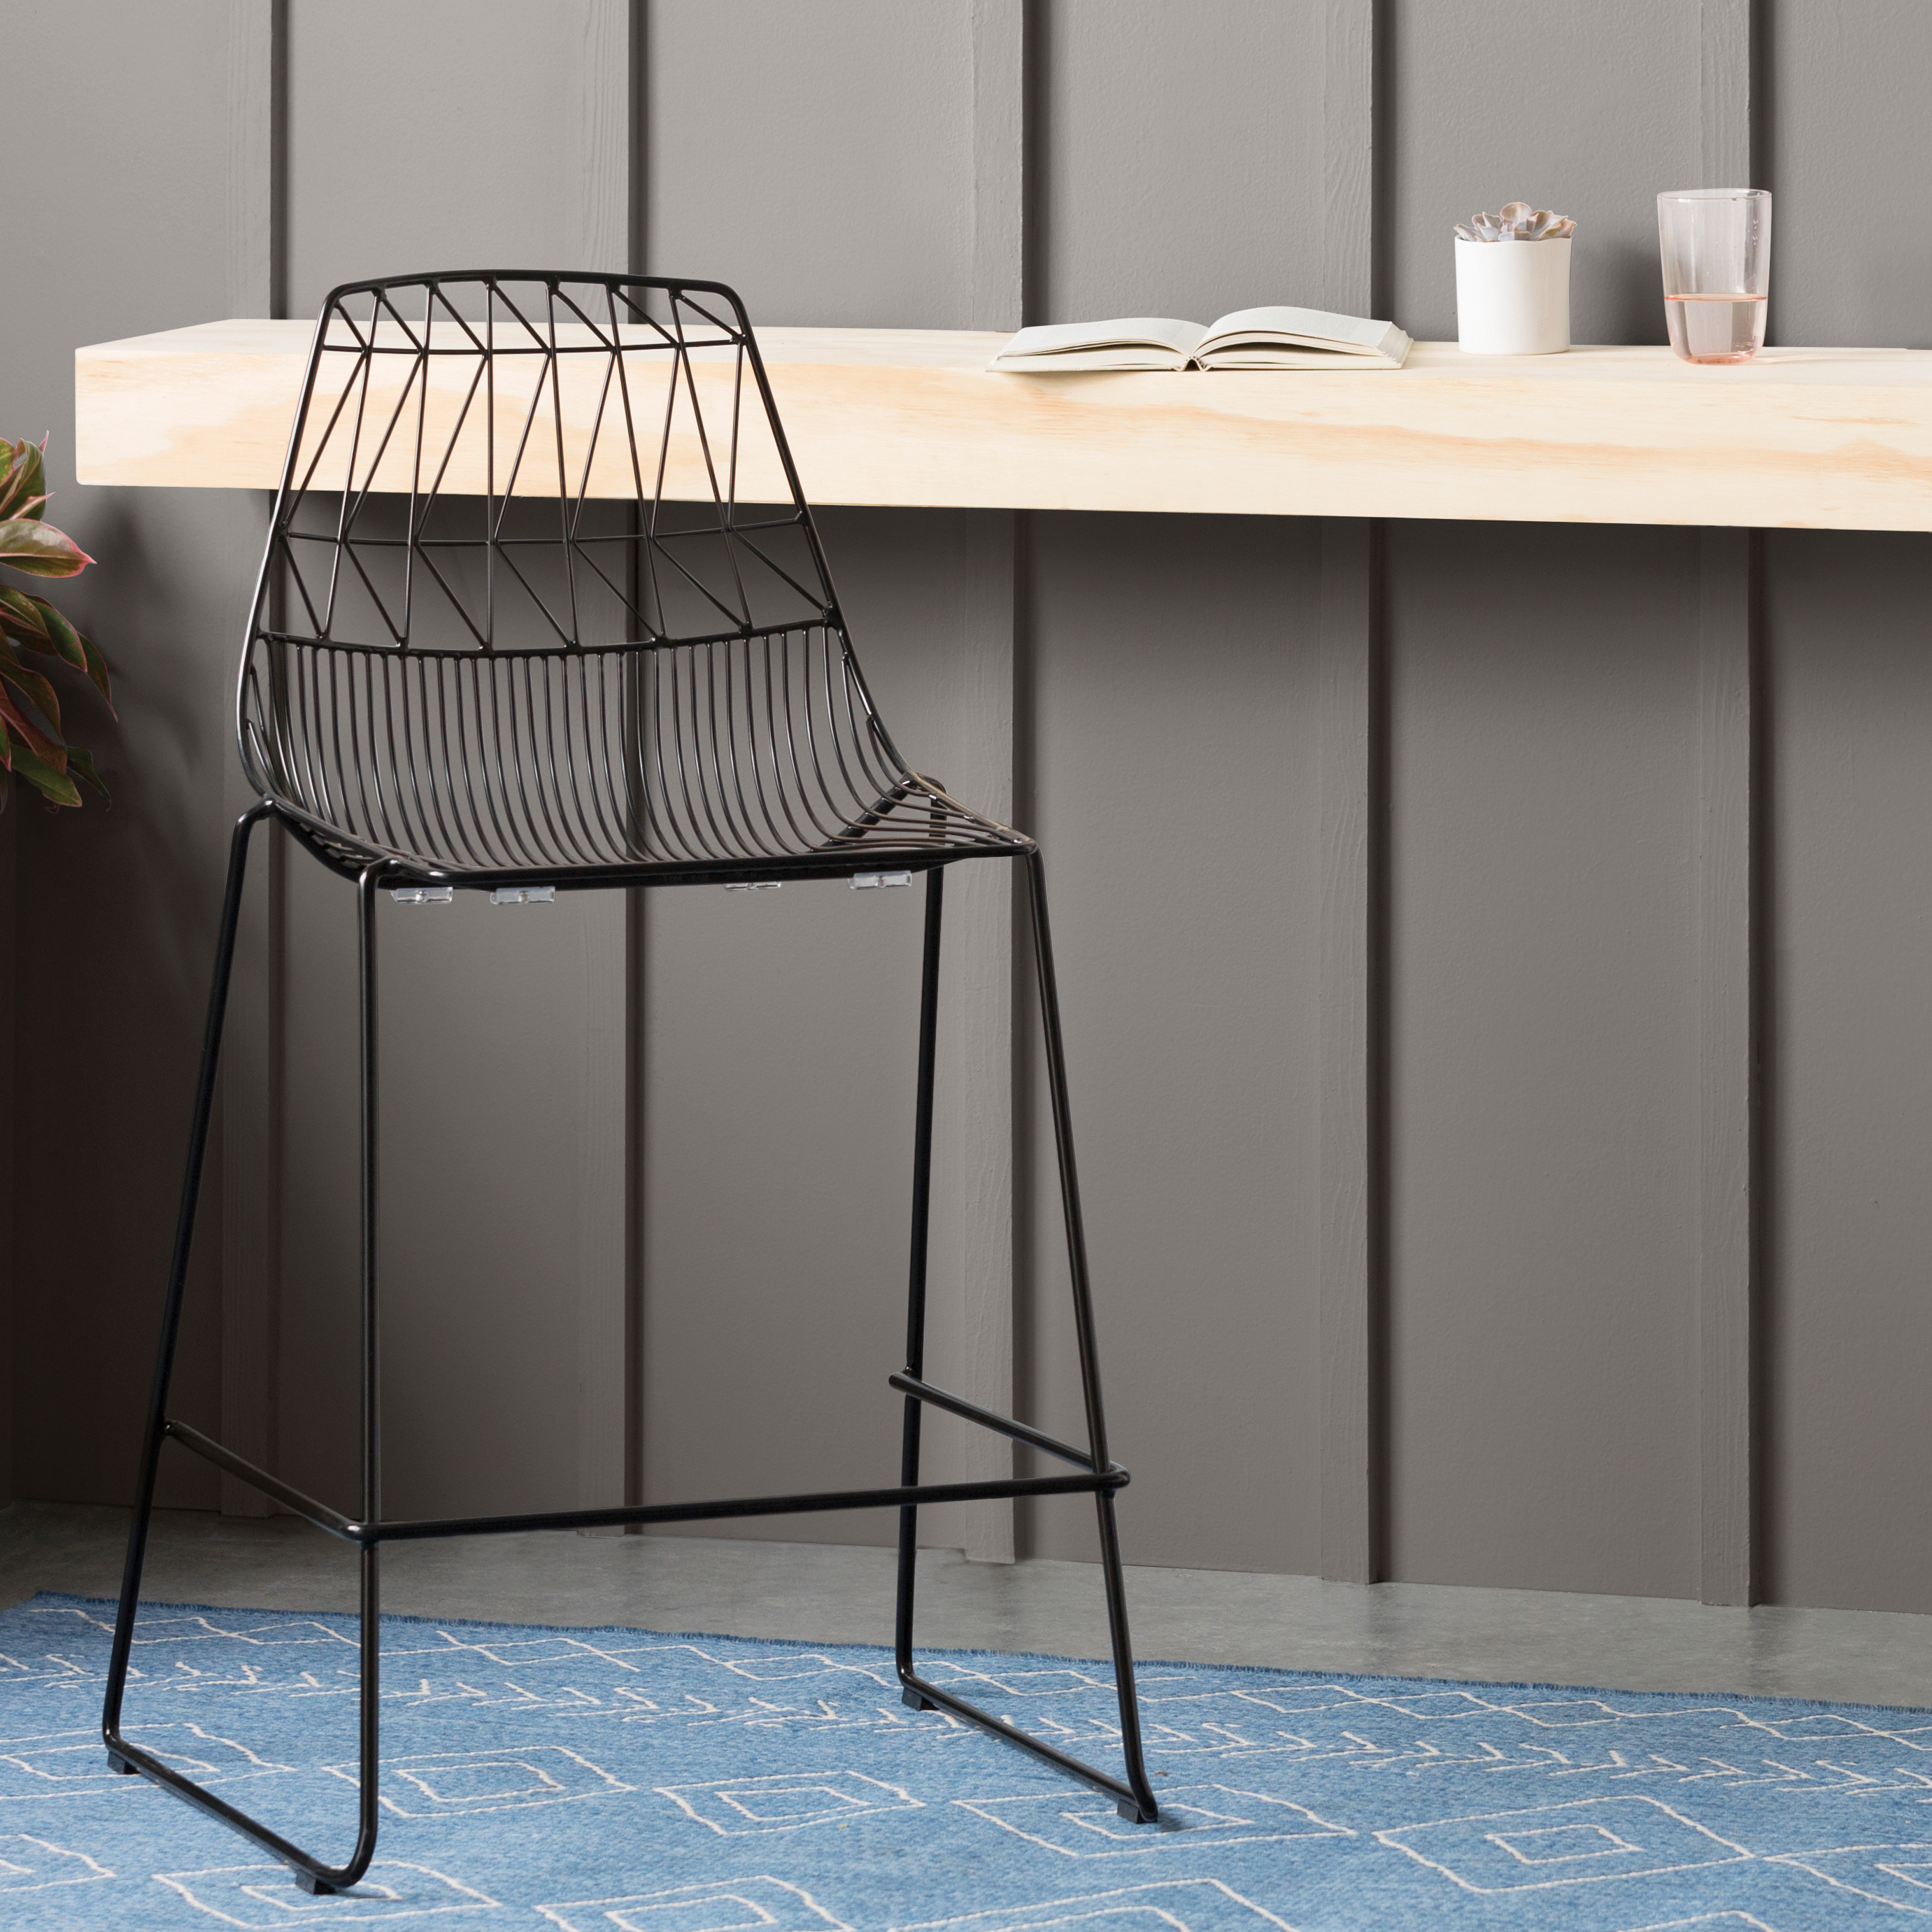 Modern Outdoor Dining Furniture (View 19 of 25)